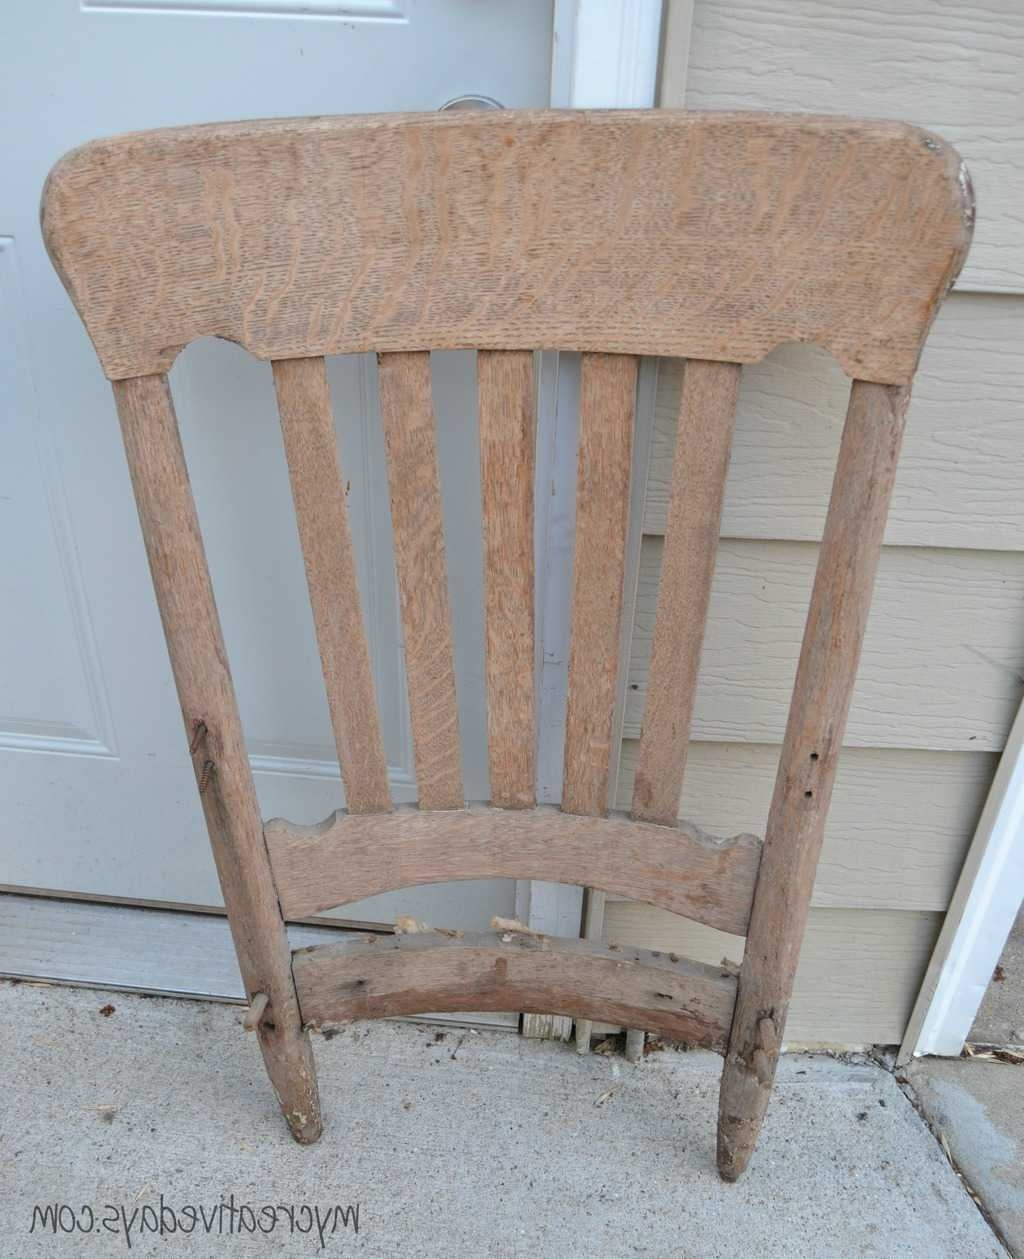 Upcycled Rocking Chairs Throughout Widely Used Diy Rocking Chair Upcycle Tutorial – My Creative Days (Gallery 15 of 20)